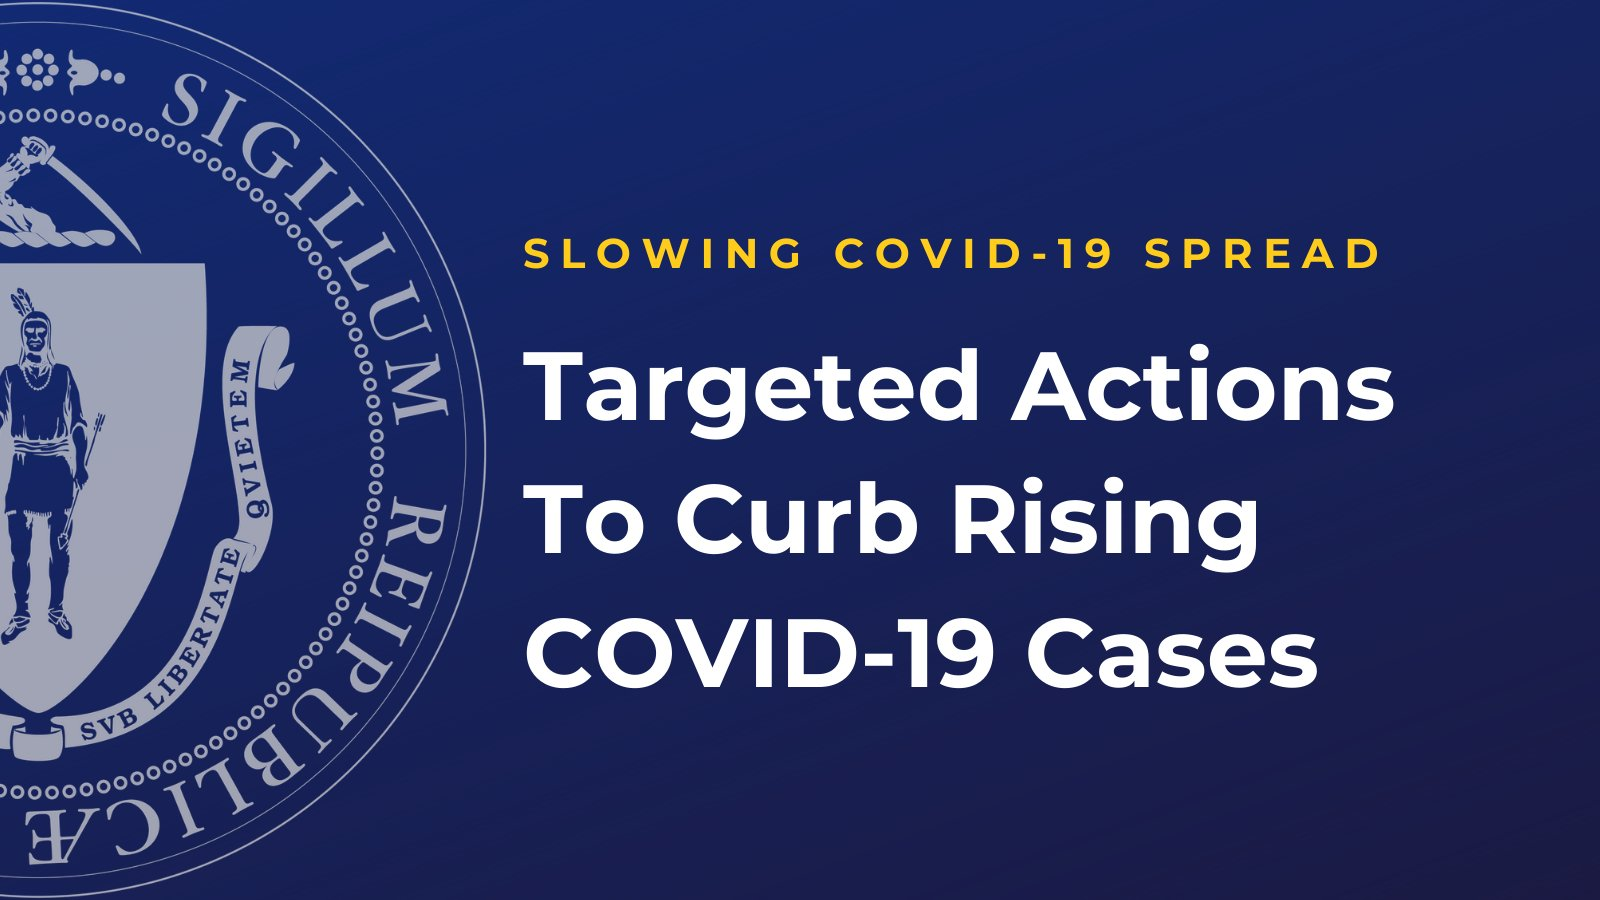 Targeted Measures To Curb Rising COVID-19 Cases